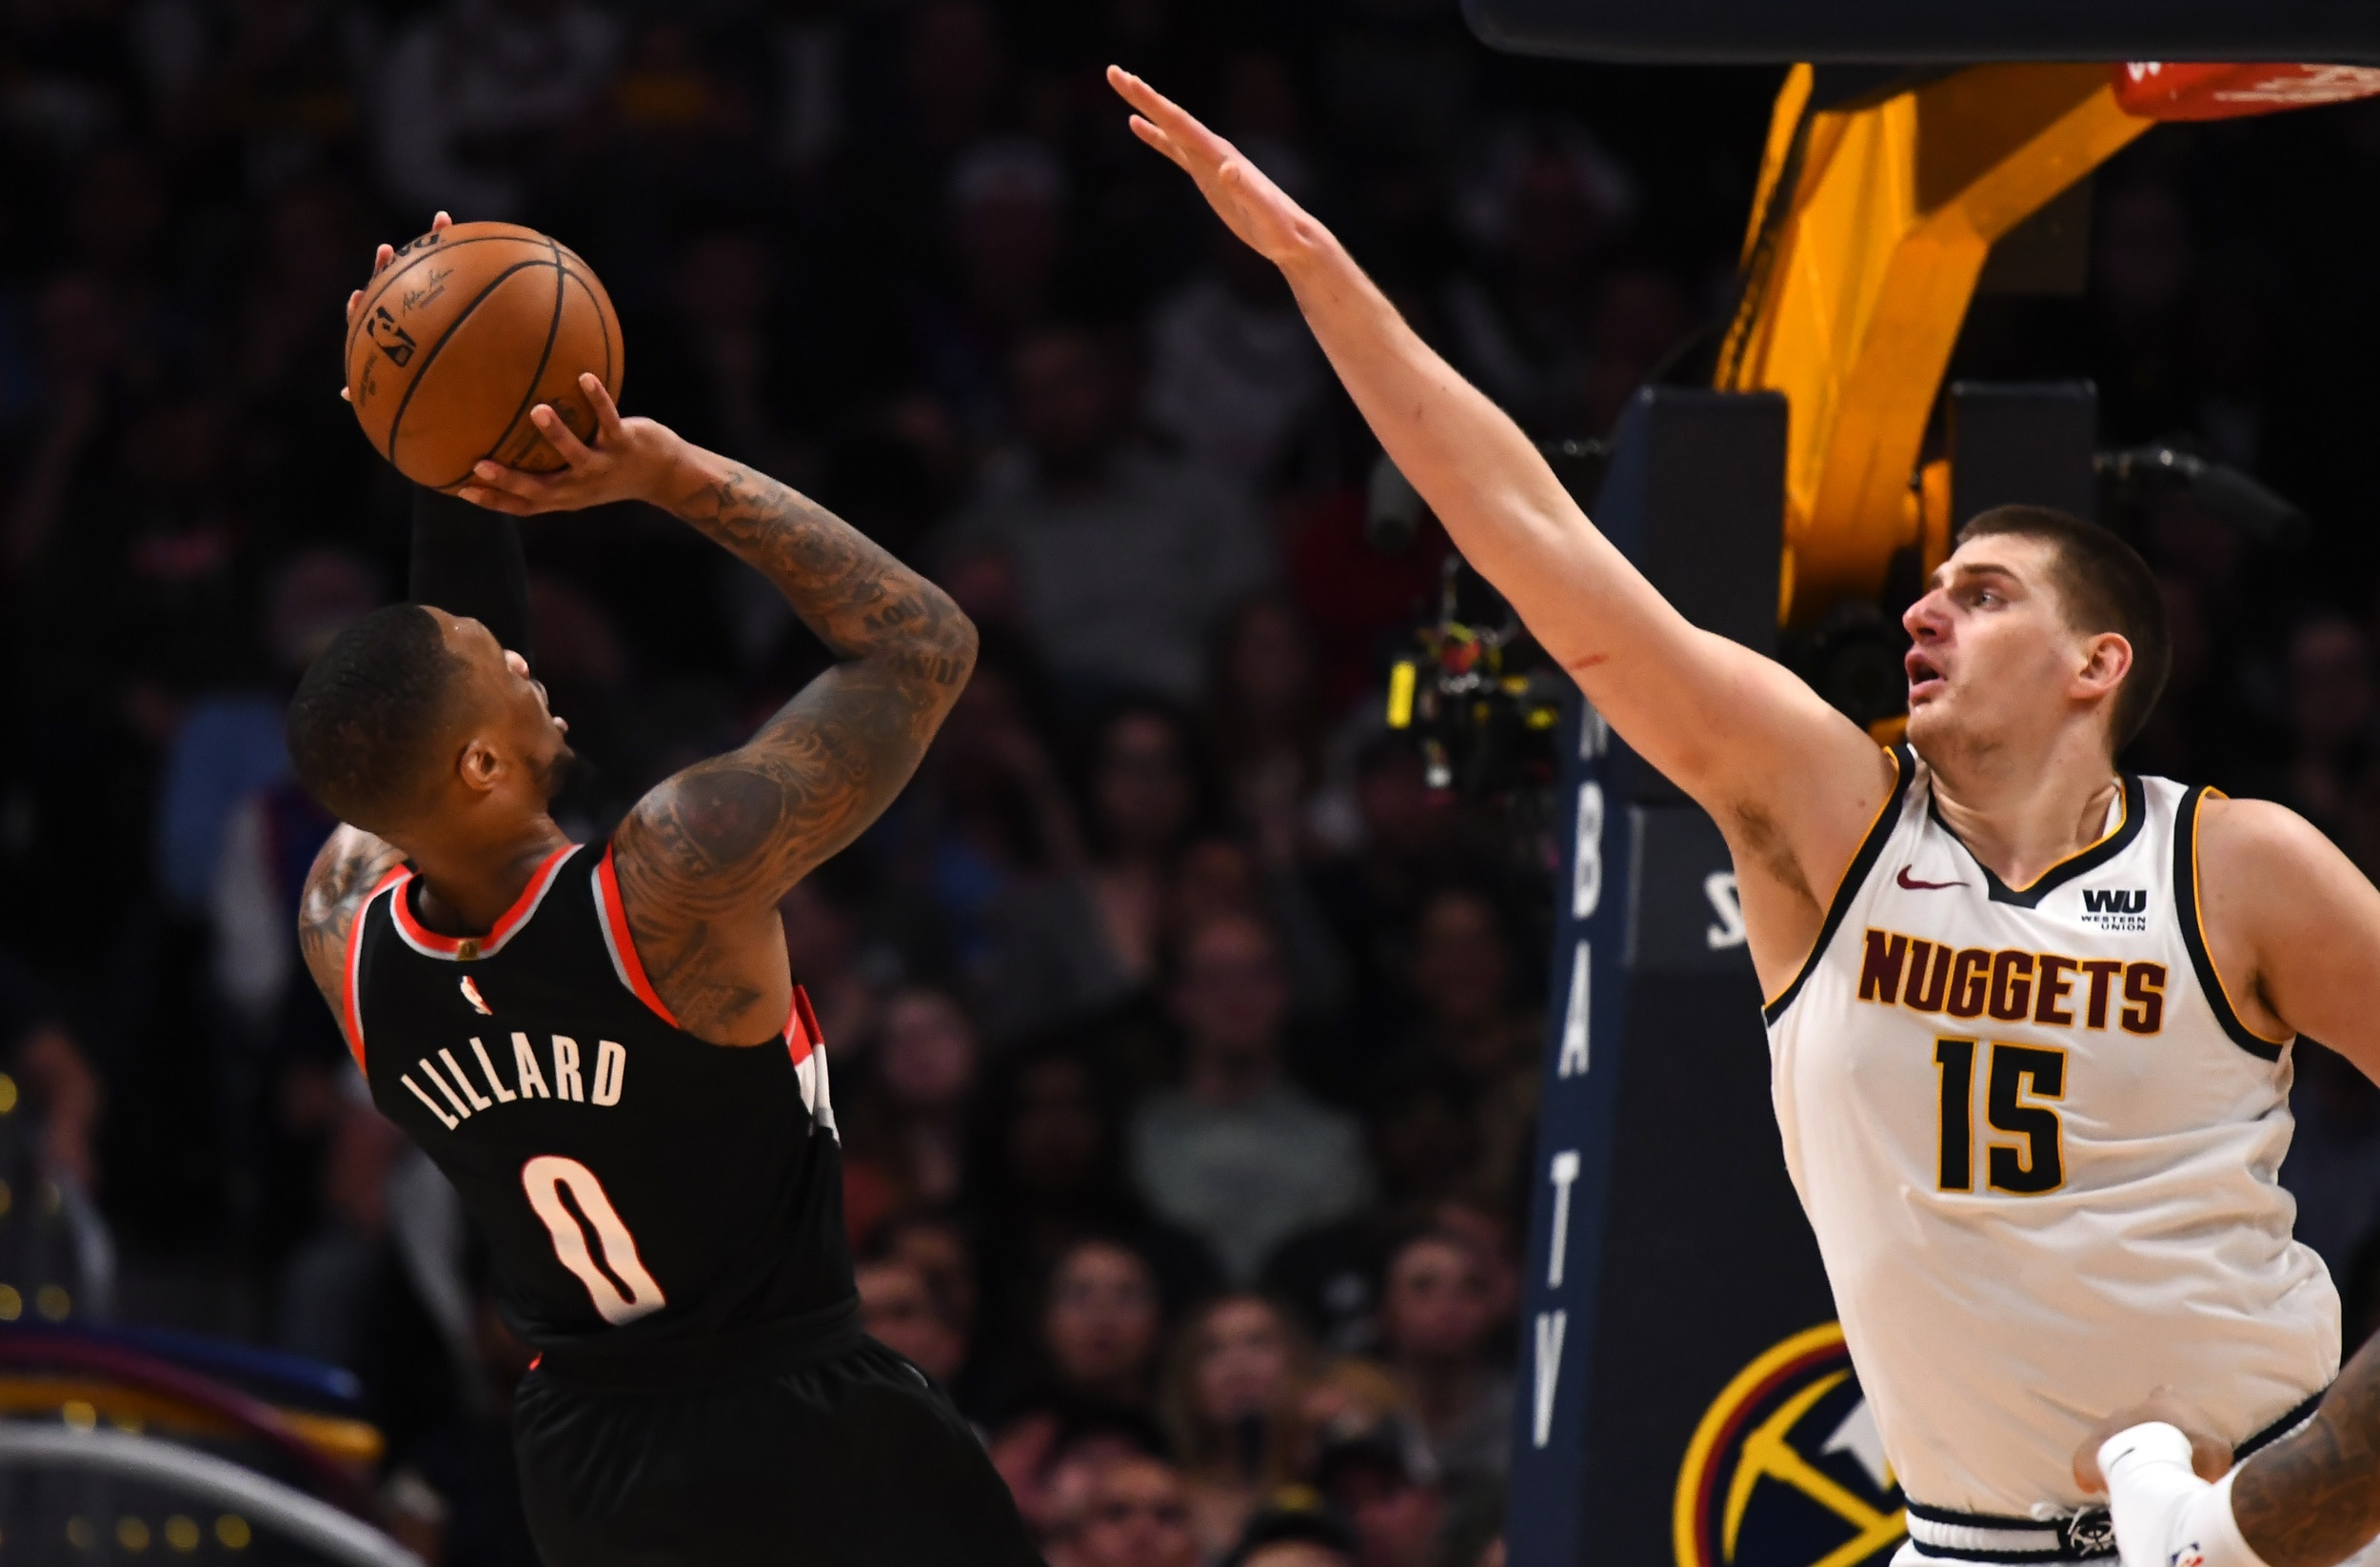 Trail Blazers vs. Nuggets - Game Recap